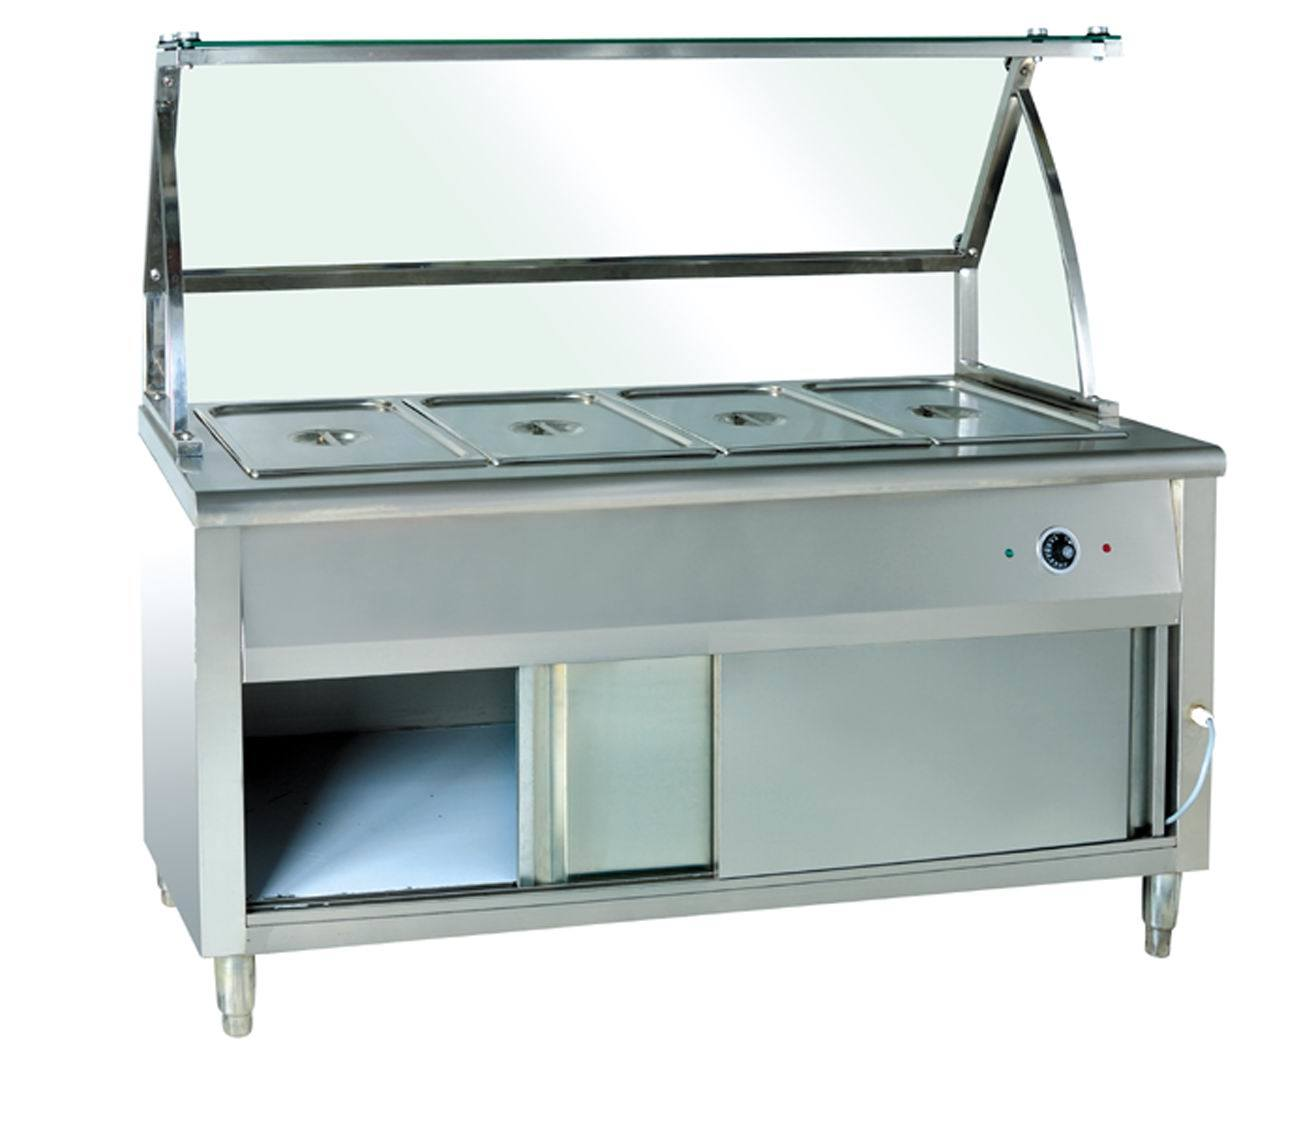 Food Warmer Trolley Wm 1500 Photos Amp Pictures